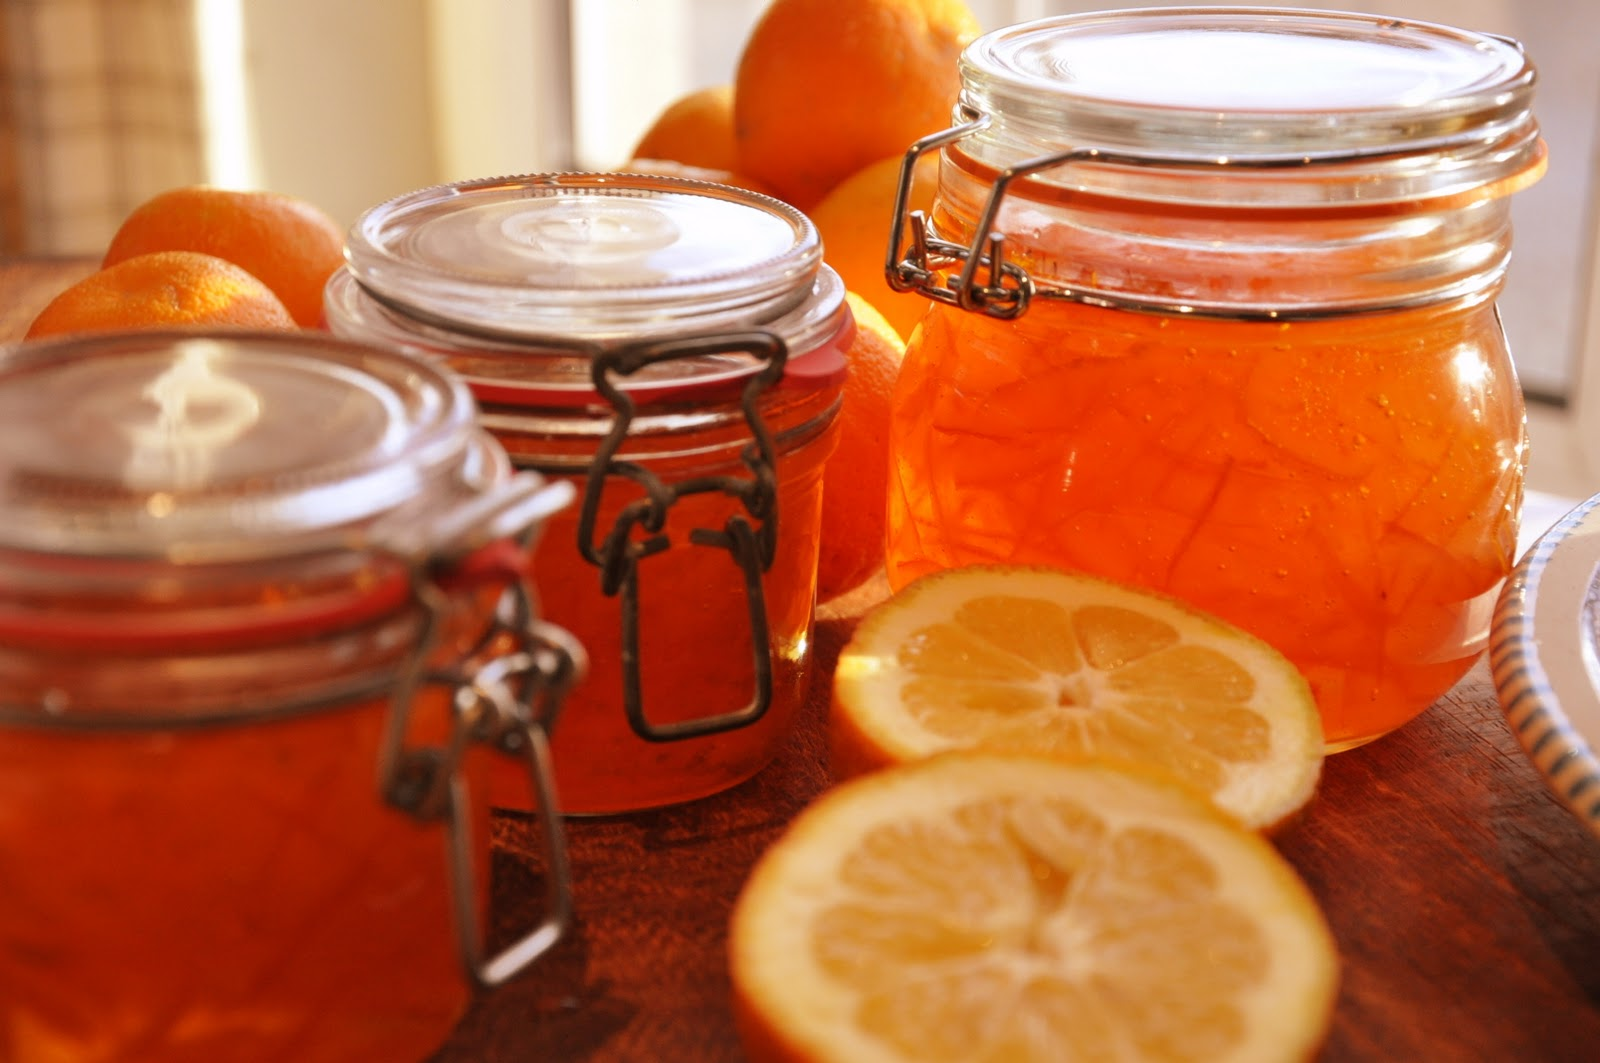 ... Power Outside Catering Company, Ireland.: Seville orange marmalade